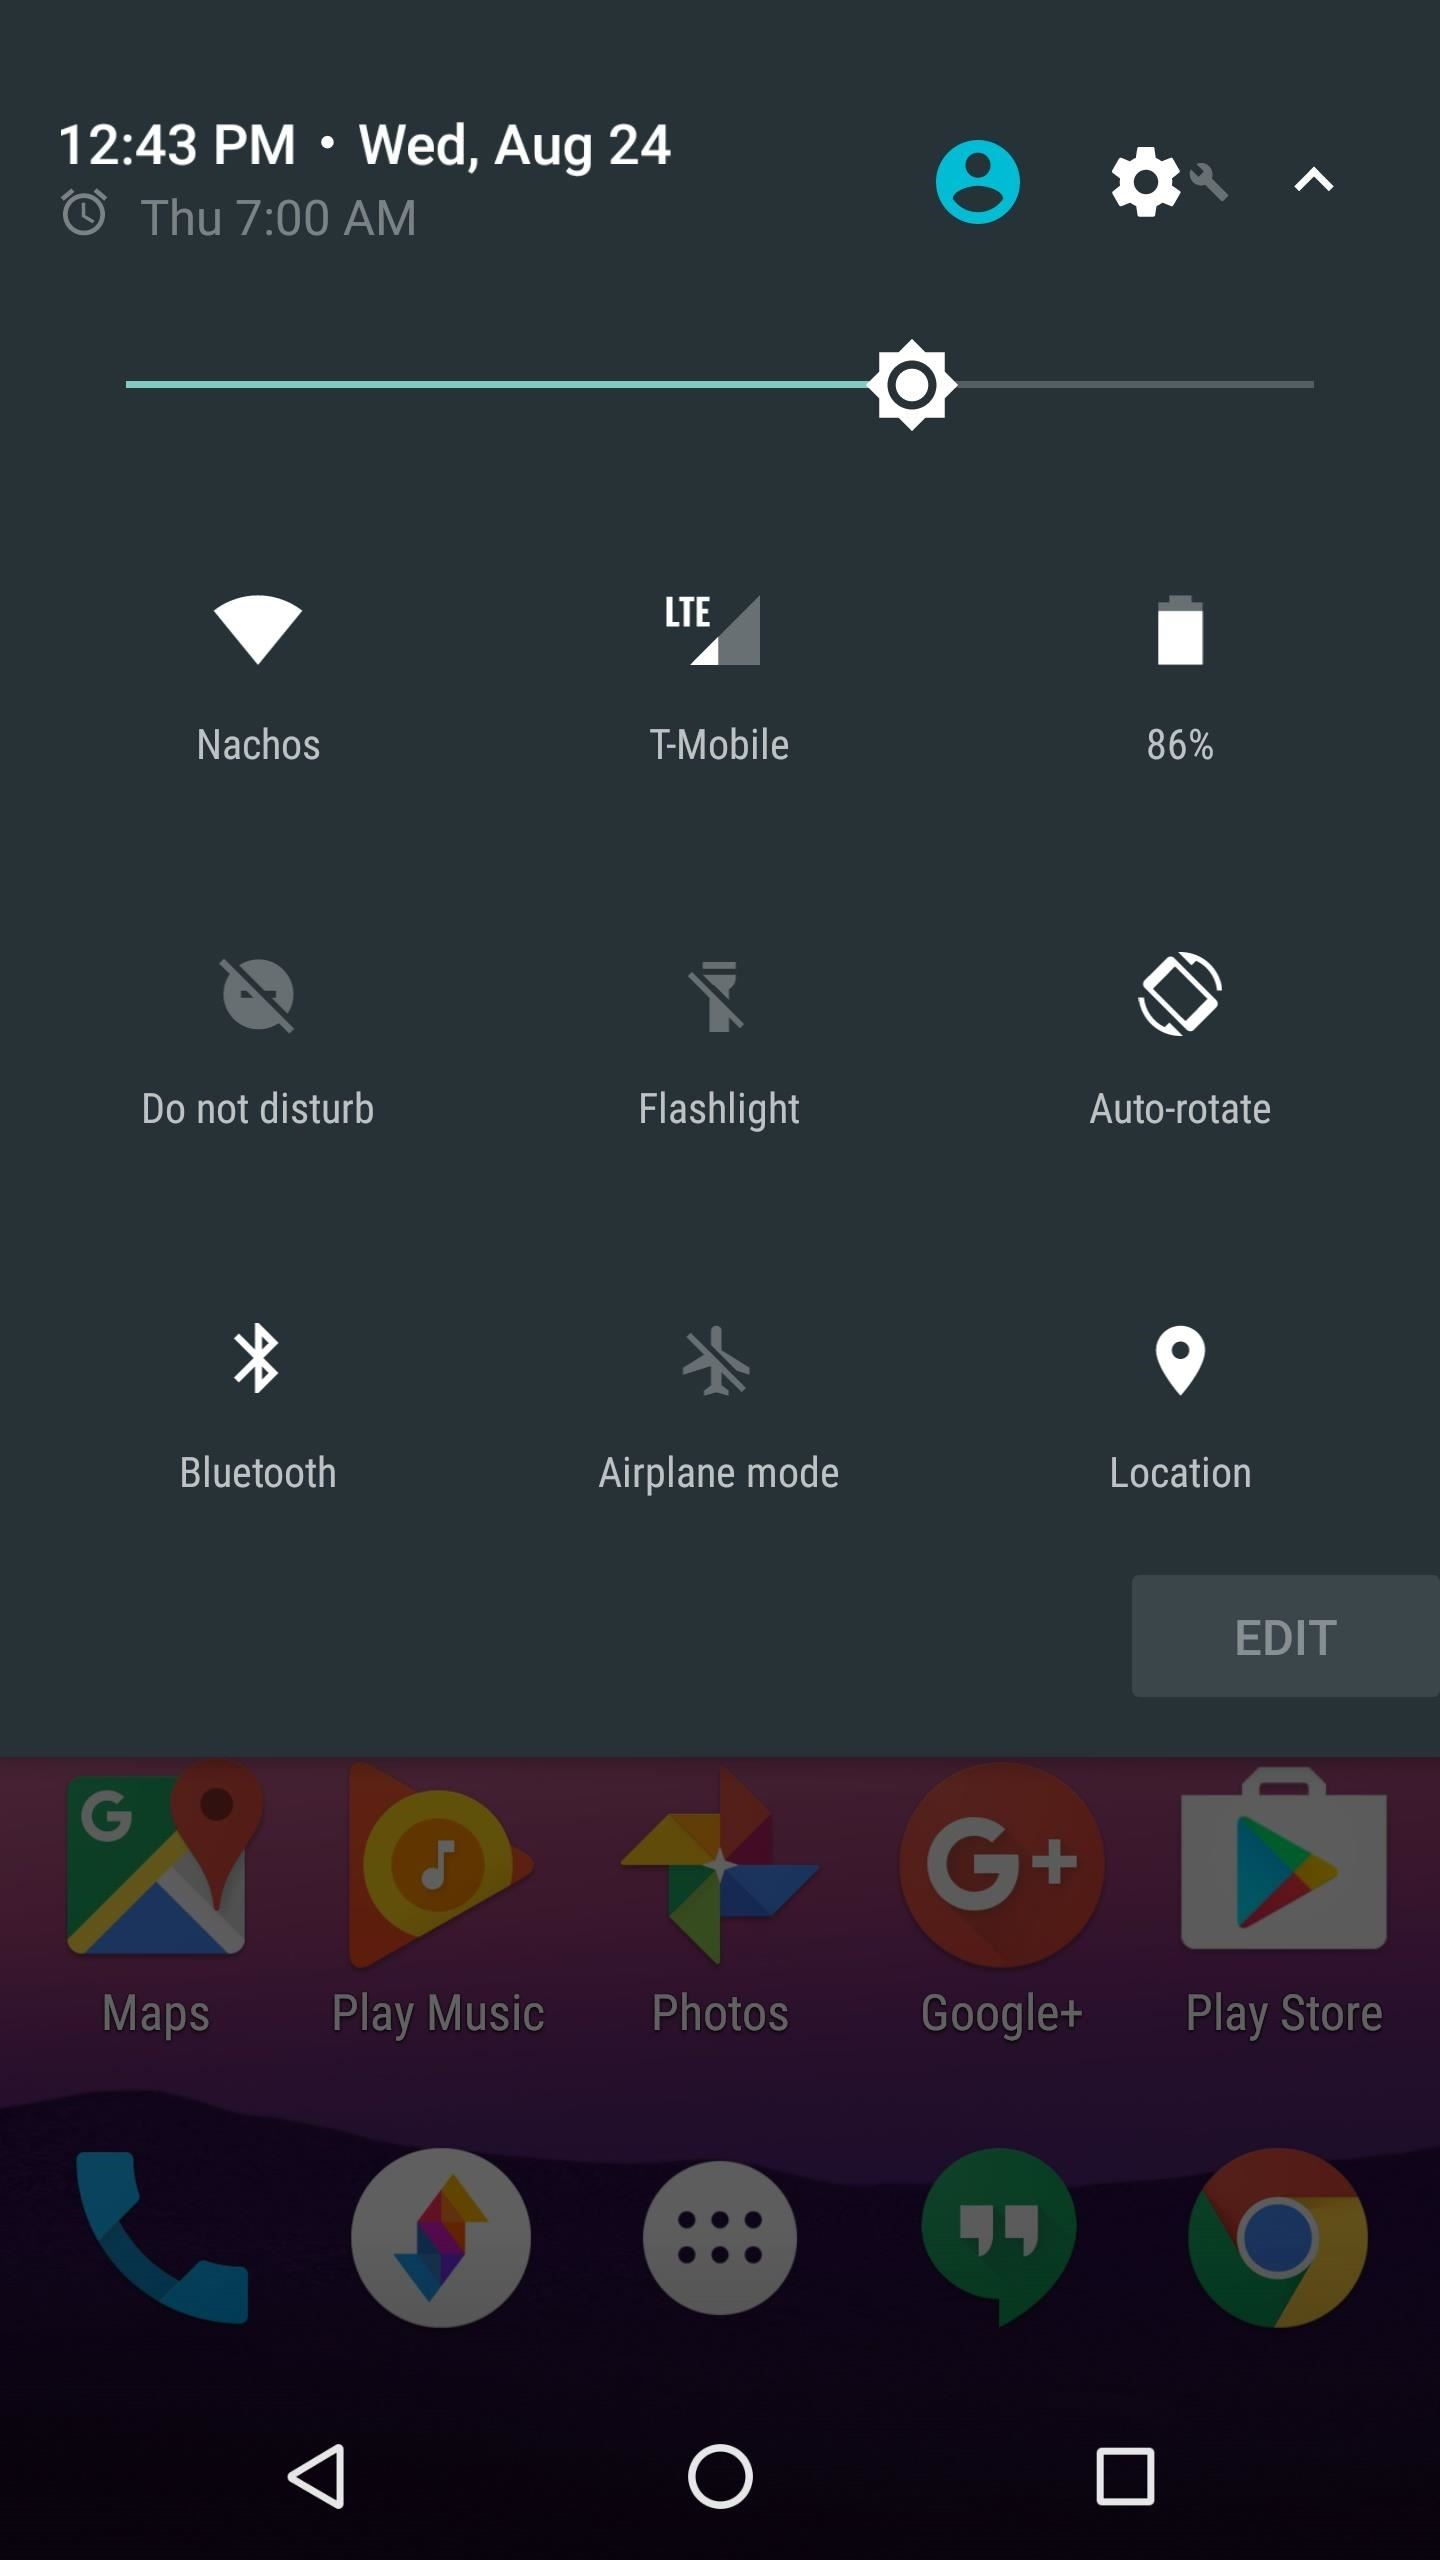 From Now On, You'll Be Able To Tap This Toggle To Turn Night